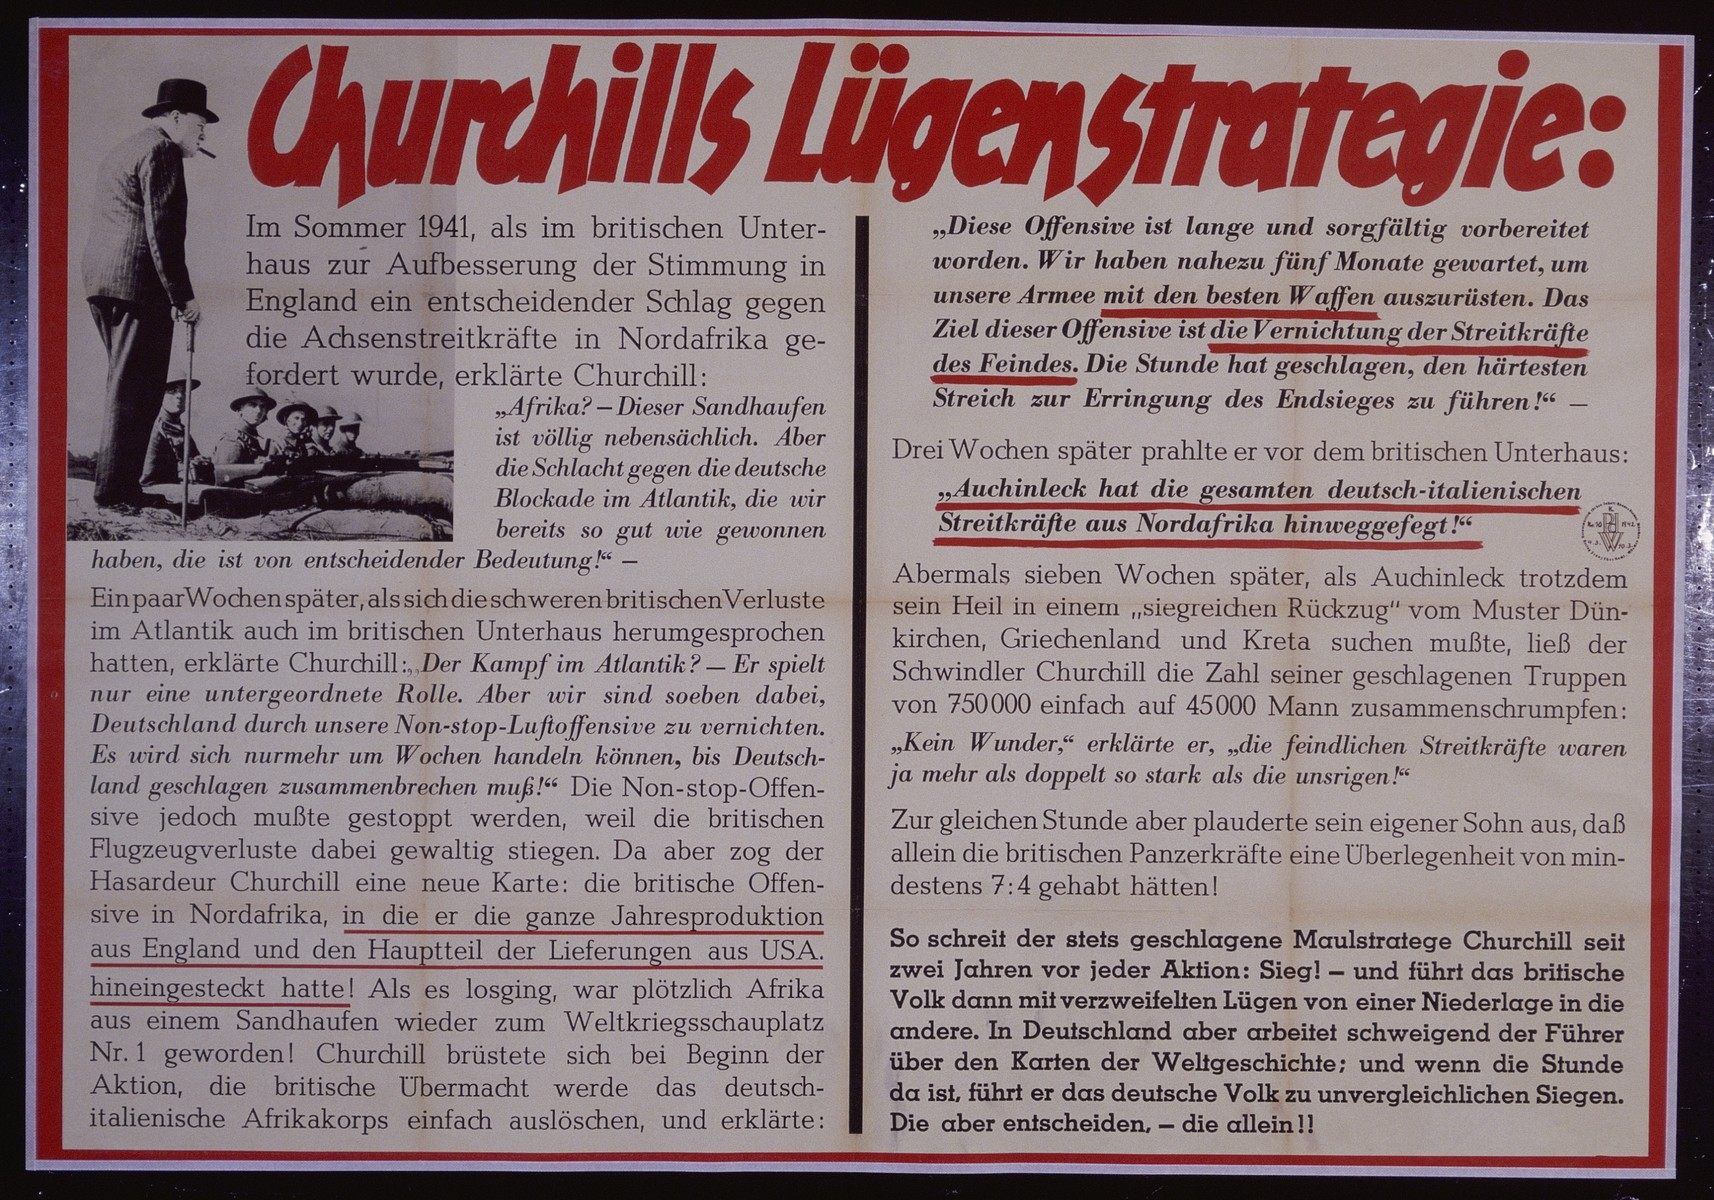 """Nazi propaganda poster entitled, """"Churchills Lugenstrategie,"""" issued by the """"Parole der Woche,"""" a wall newspaper (Wandzeitung) published by the National Socialist Party propaganda office in Munich."""